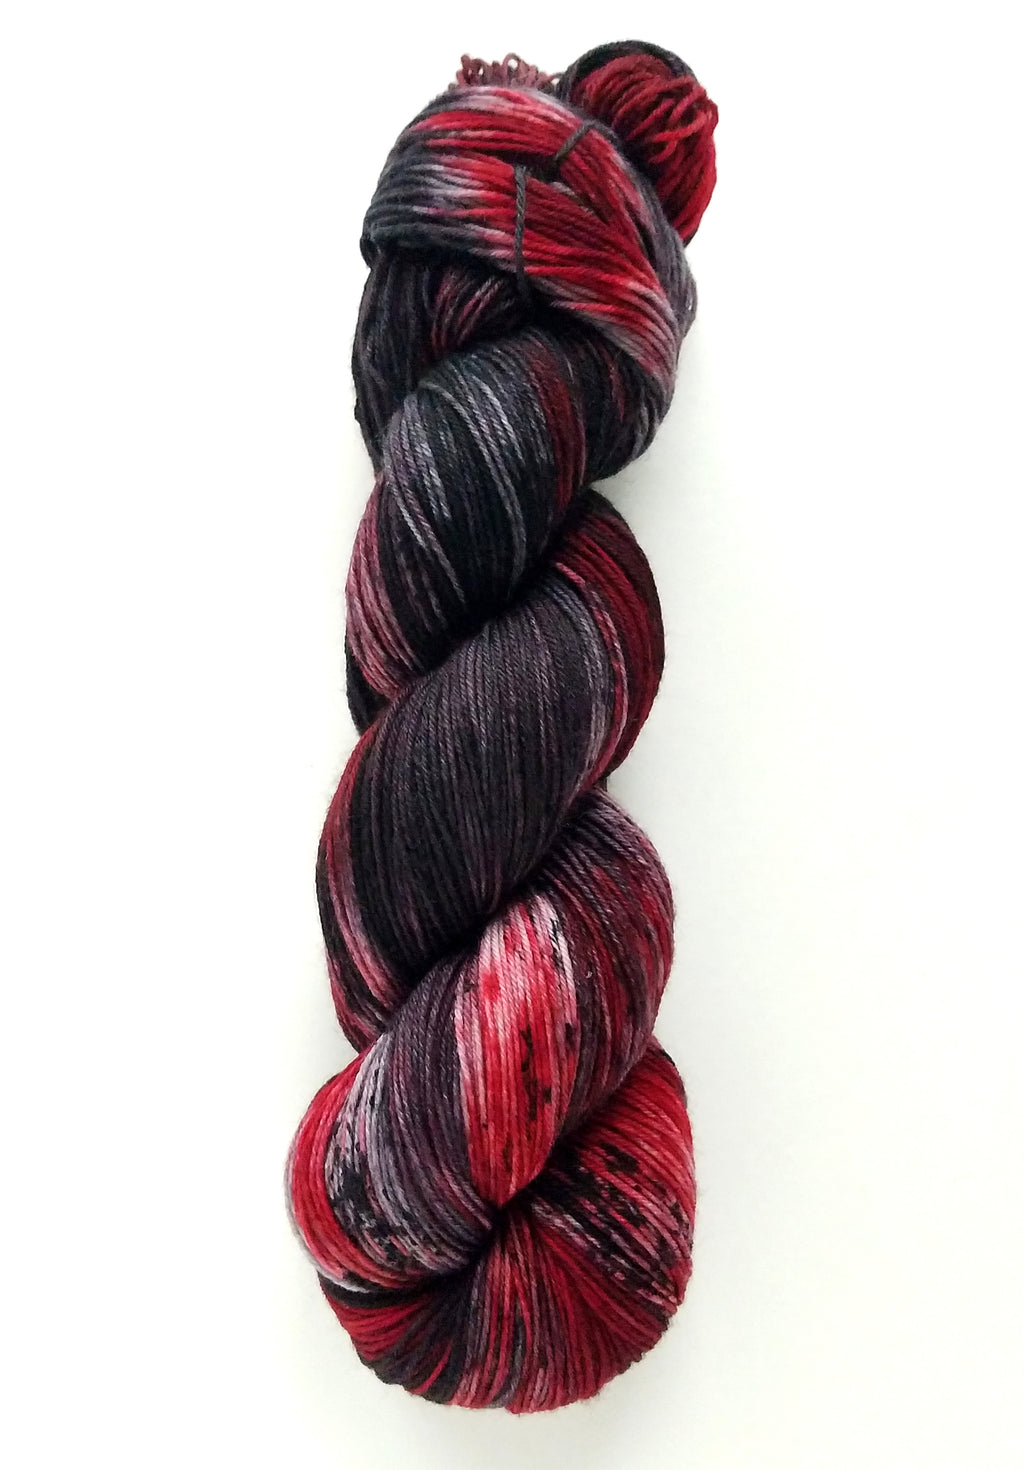 Jersey Devil Hand Dyed Yarn {The Jersey Collection 1.0}